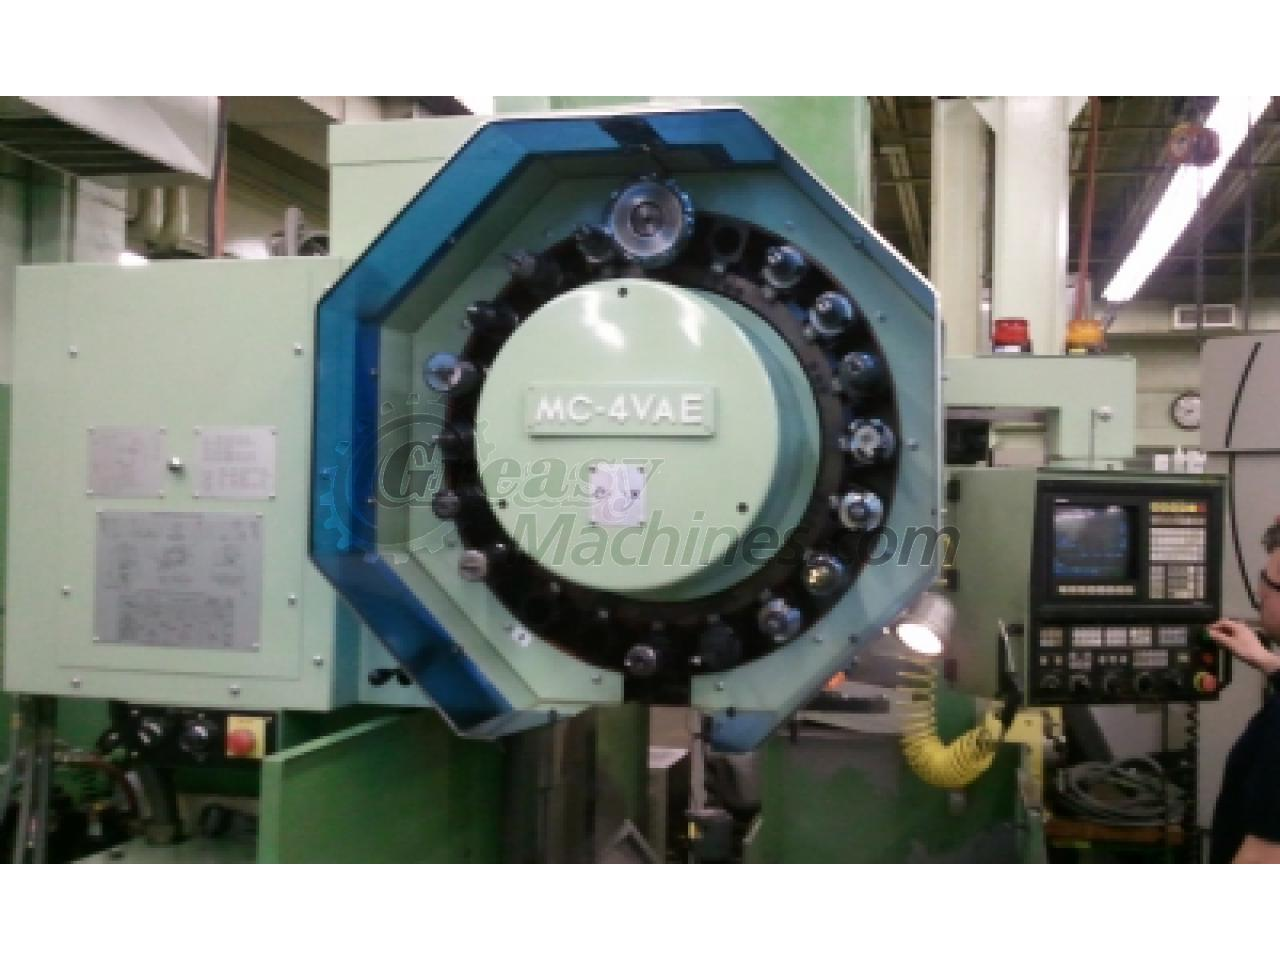 OKUMA MC-4VAE, 4 axis machining center, OSP 5020M control, Nikken rotary table, 1993, Excellent